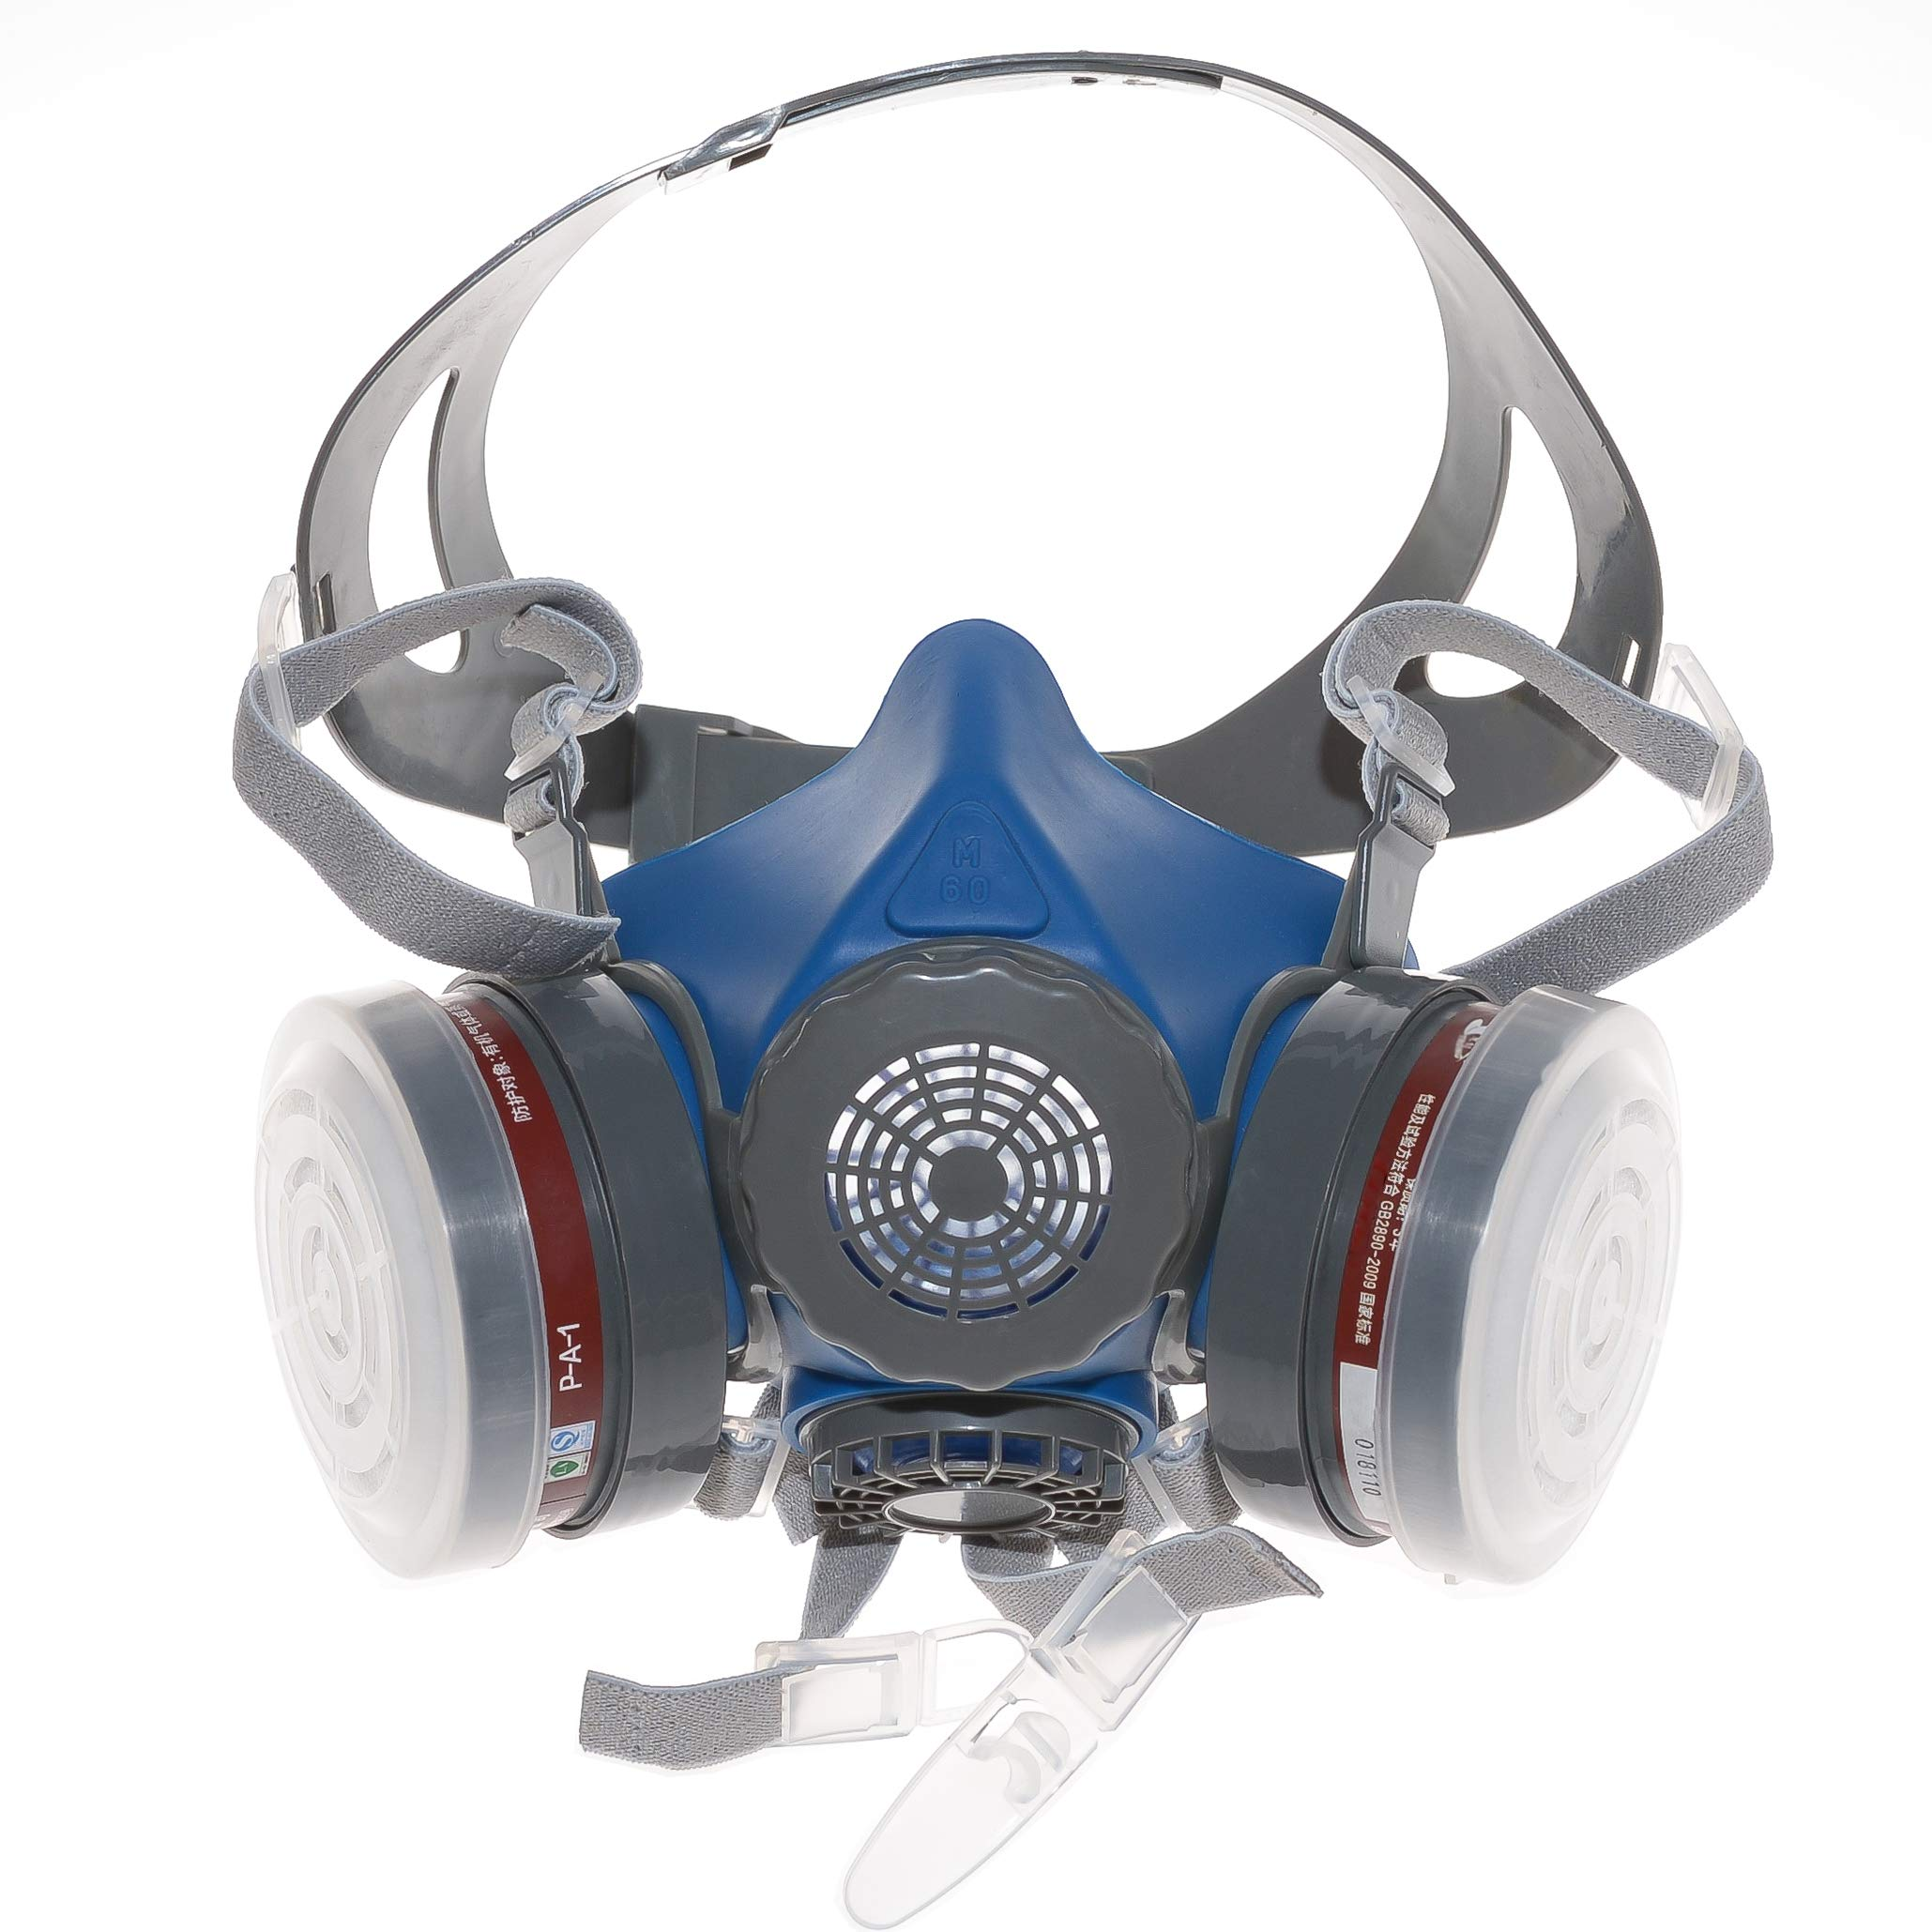 HXMY Anti-Dust Industrial Spray Paint Polishing Respirator Reusable Face Mask